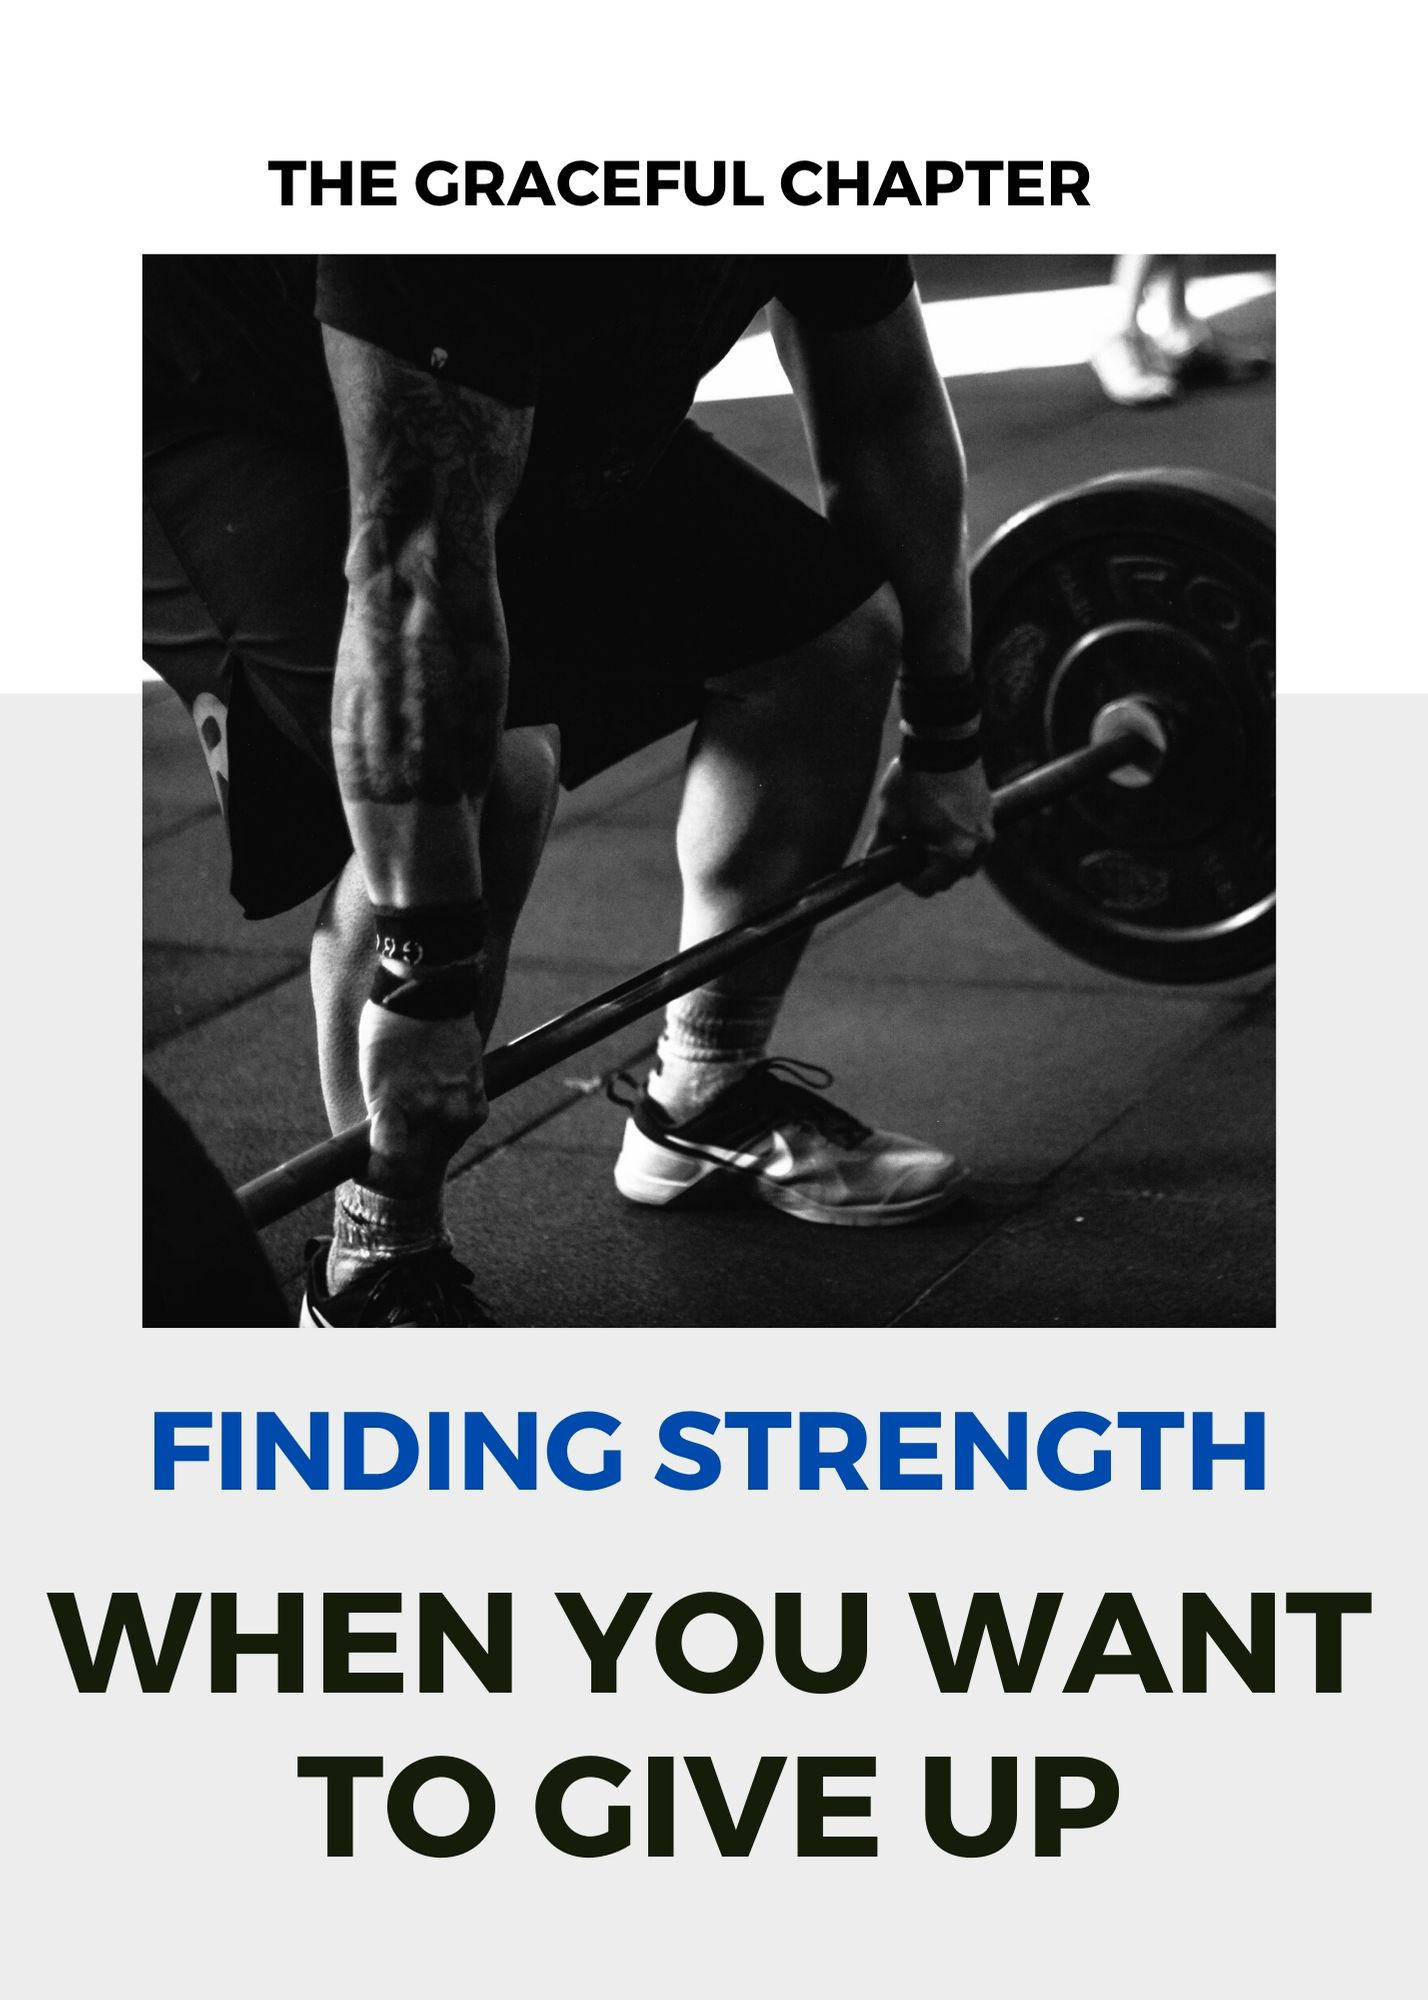 Finding strength when you want to give up